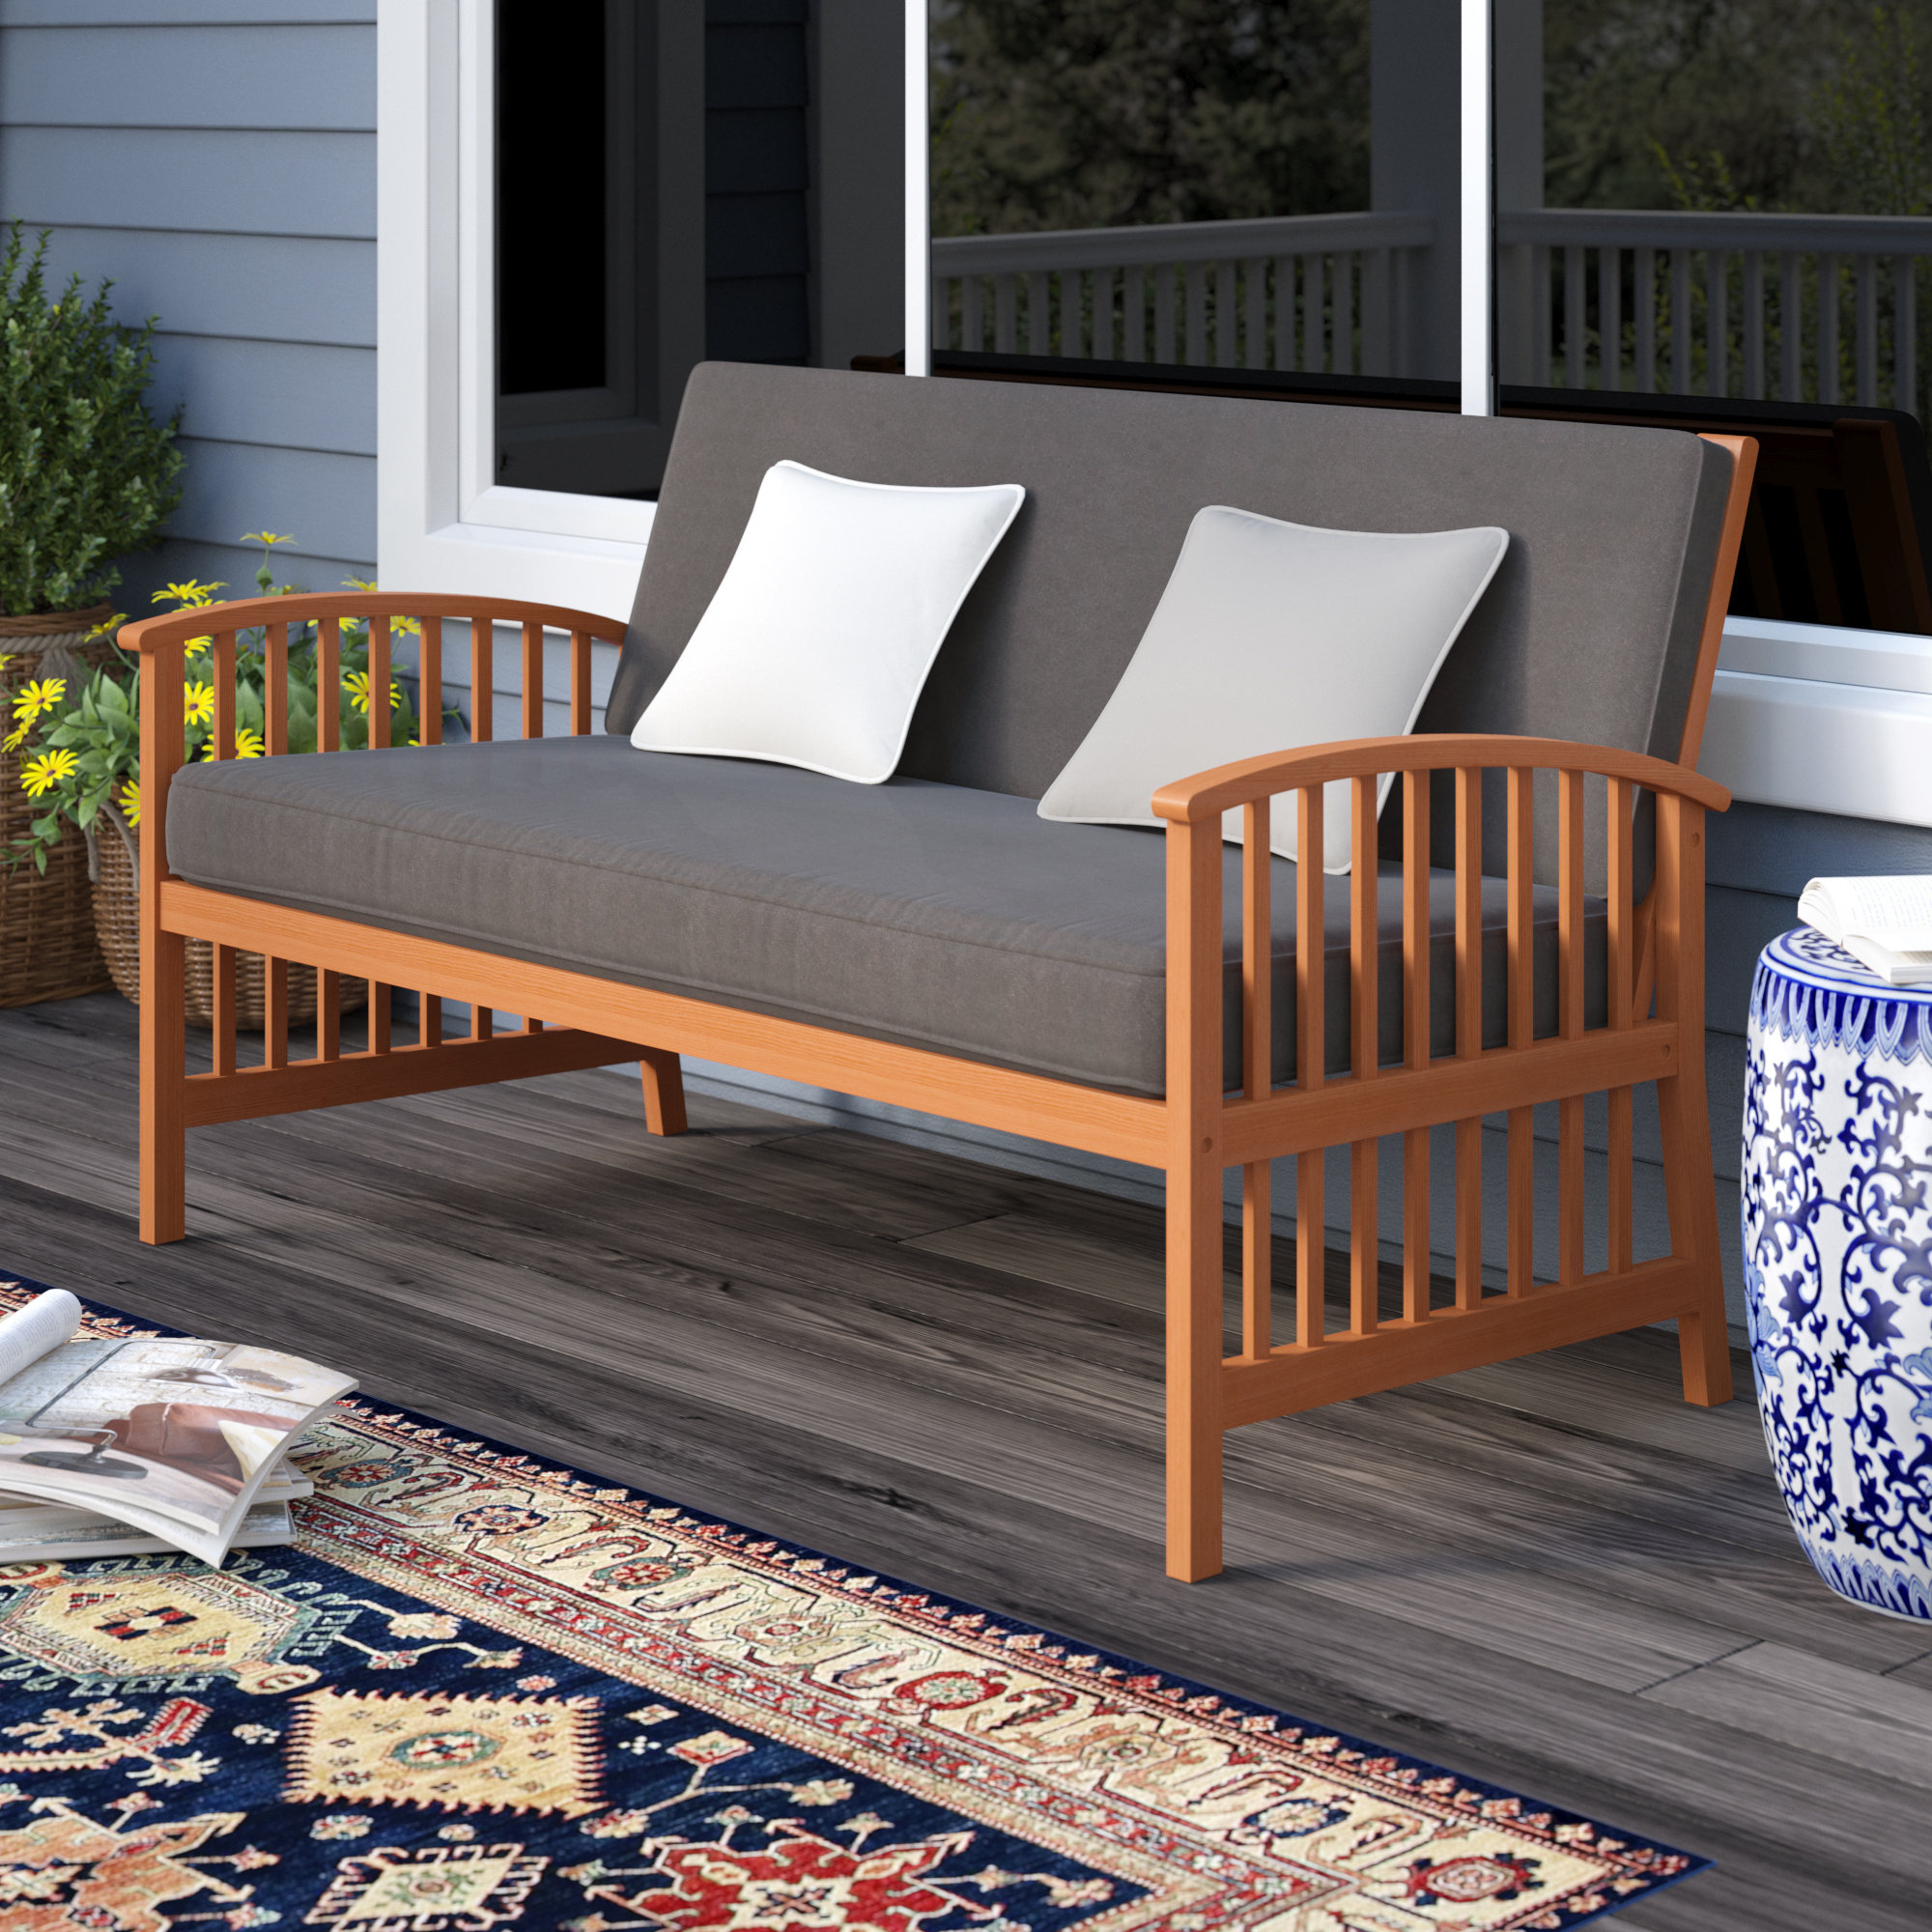 2019 Greenup Outdoor Sofa With Cushions Inside Calila Teak Loveseats With Cushion (View 1 of 20)